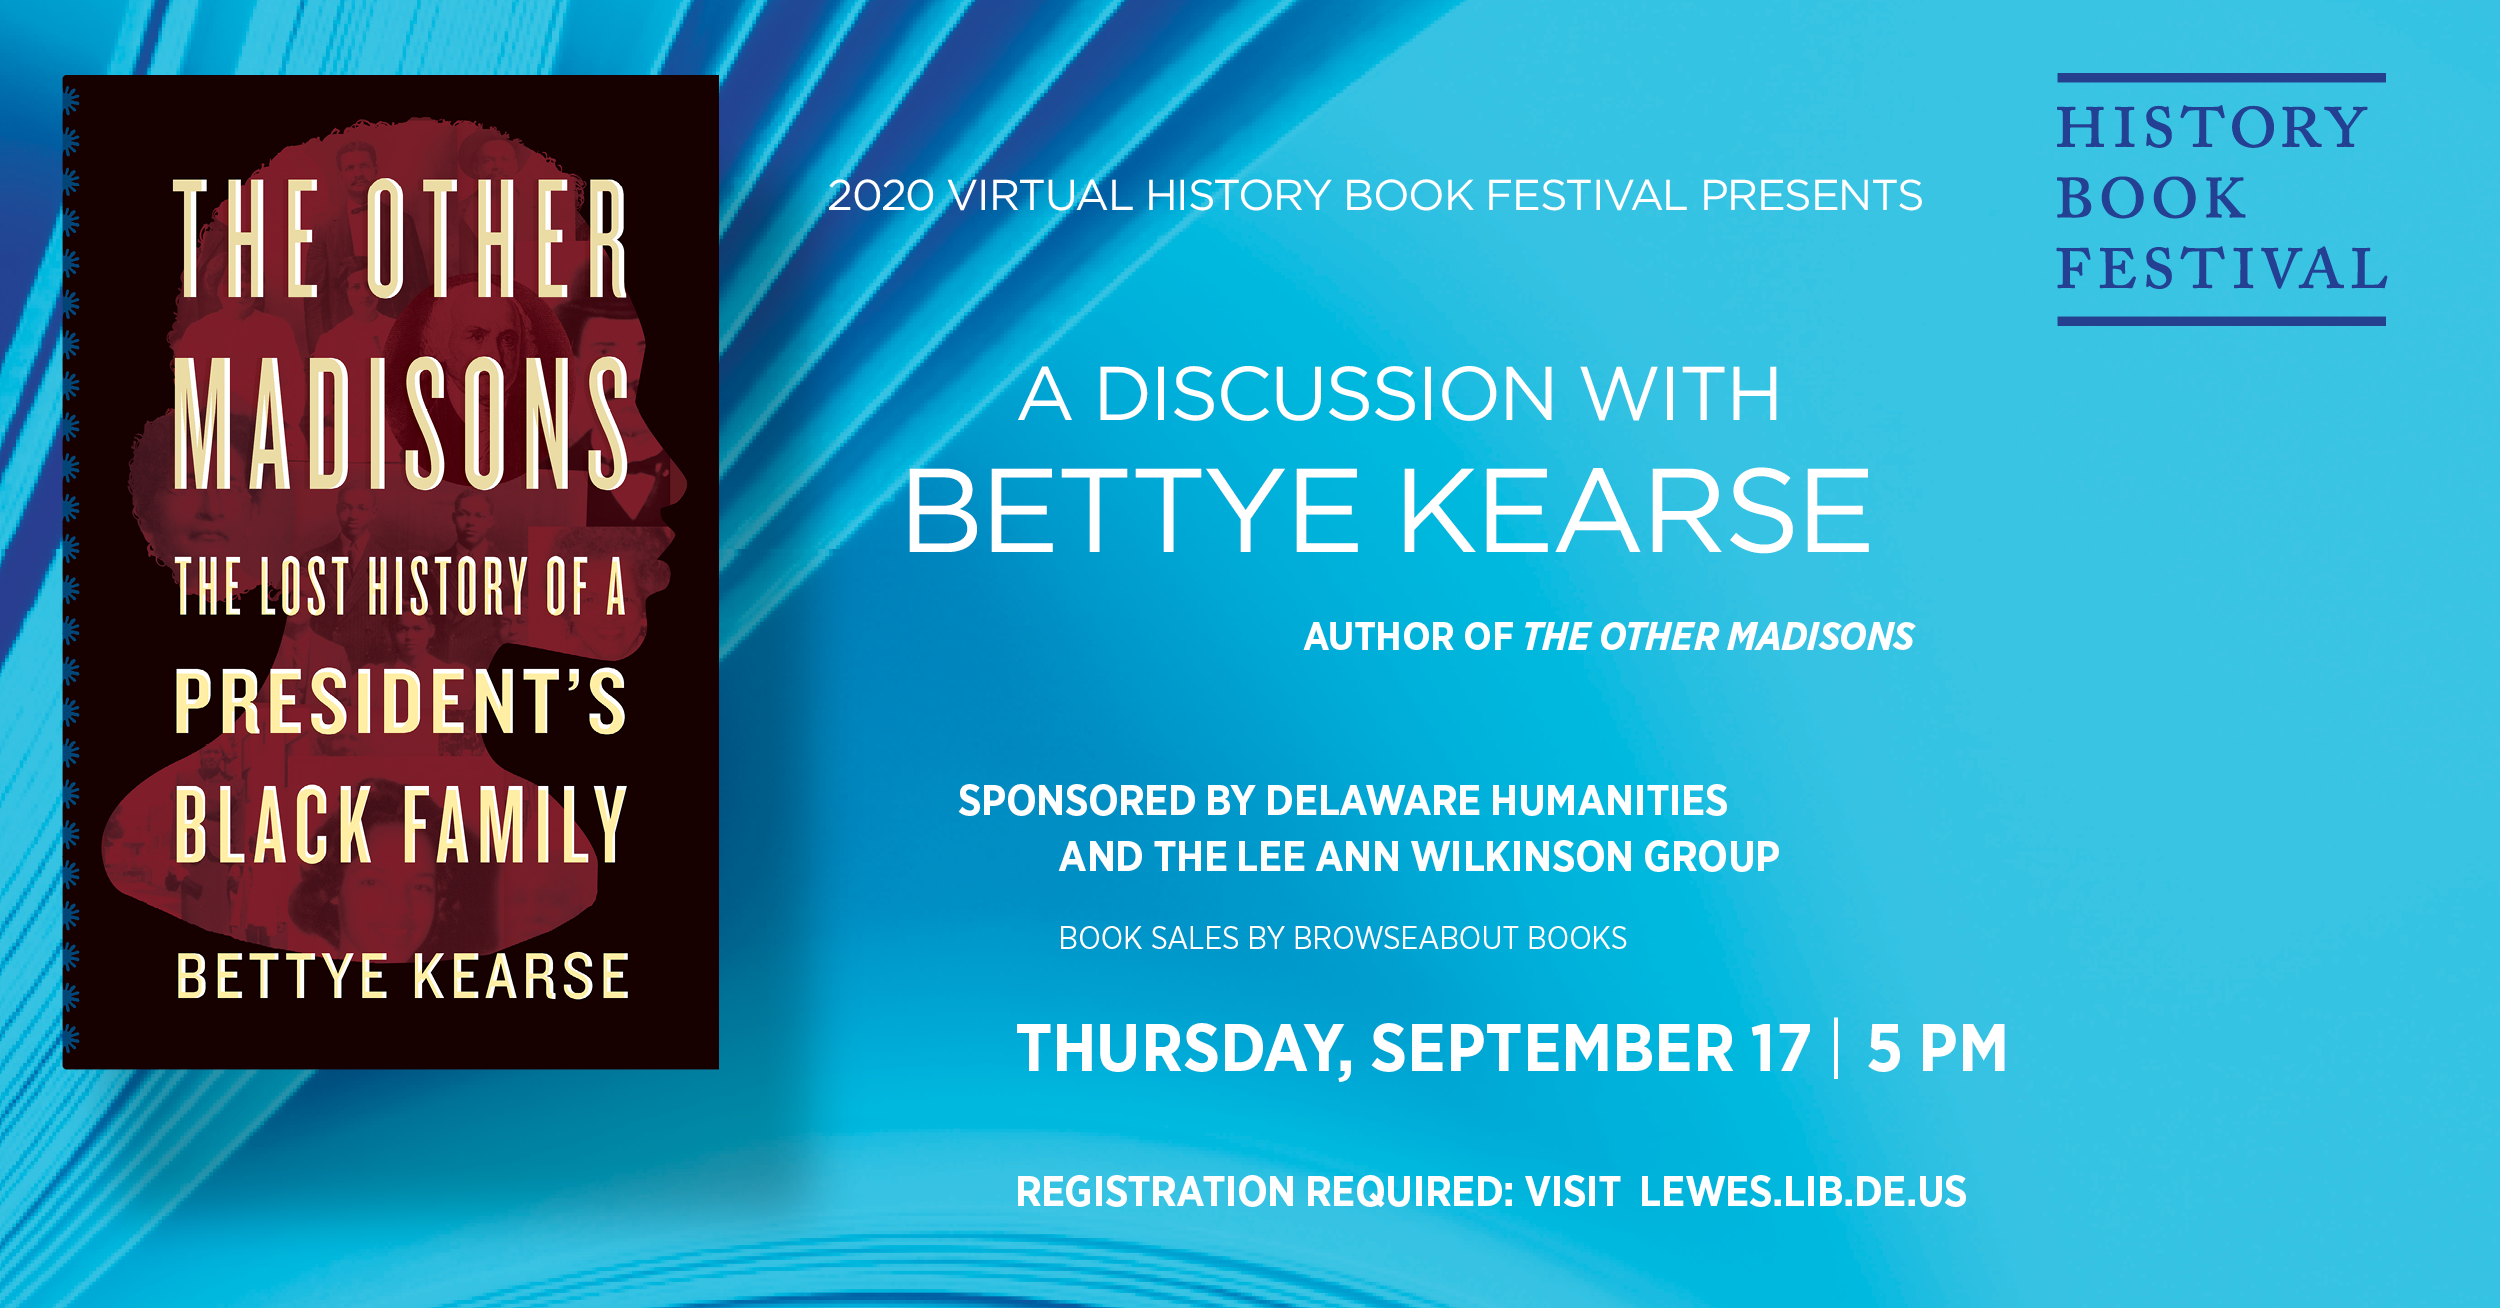 History Book Festival presents Bettye Kearse | The Other Madisons